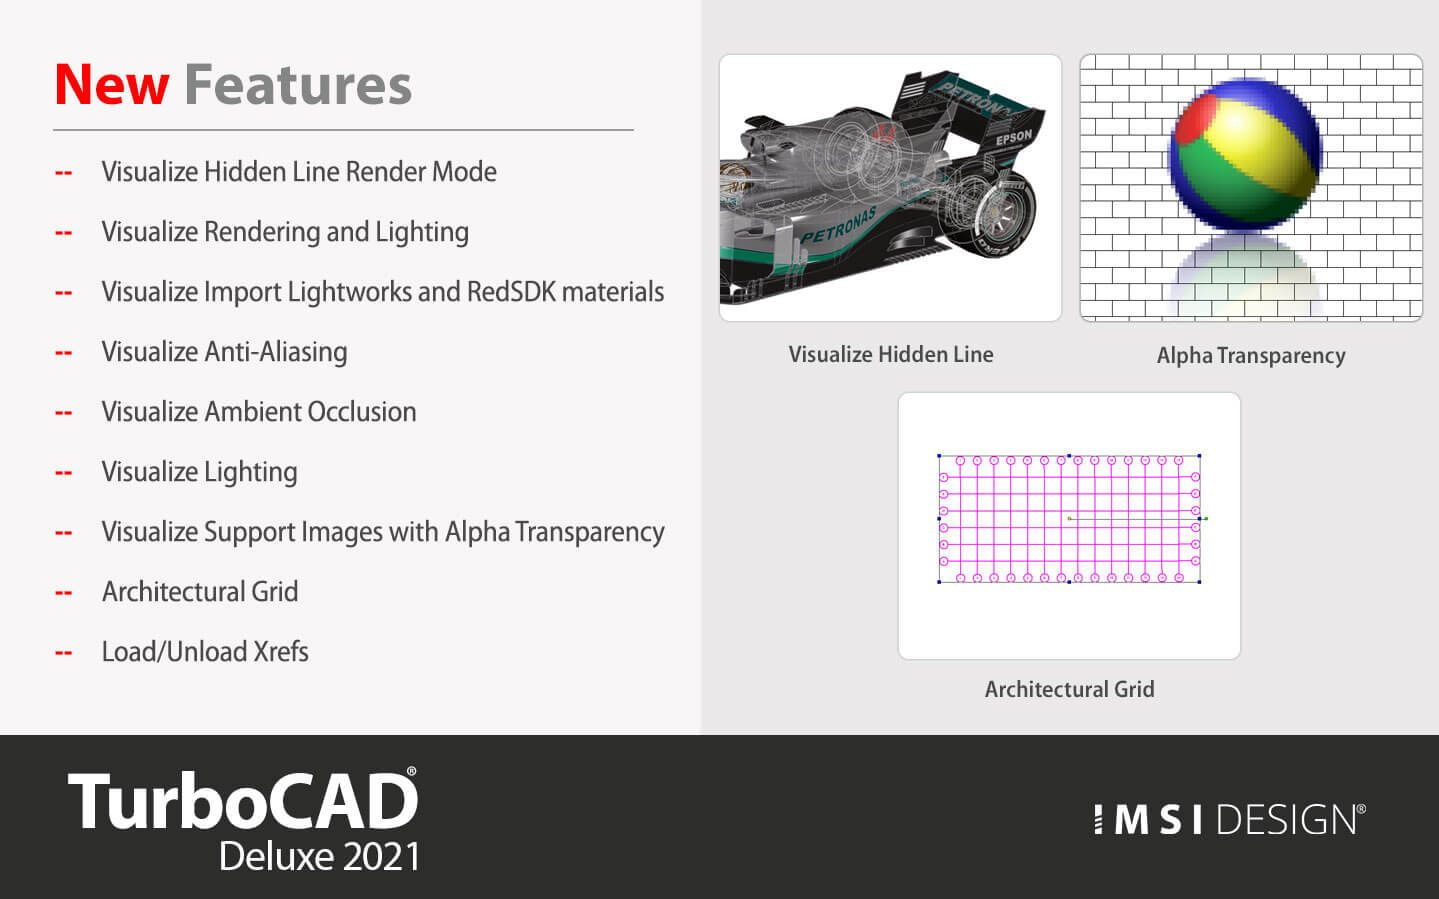 What's New in TurboCAD Deluxe